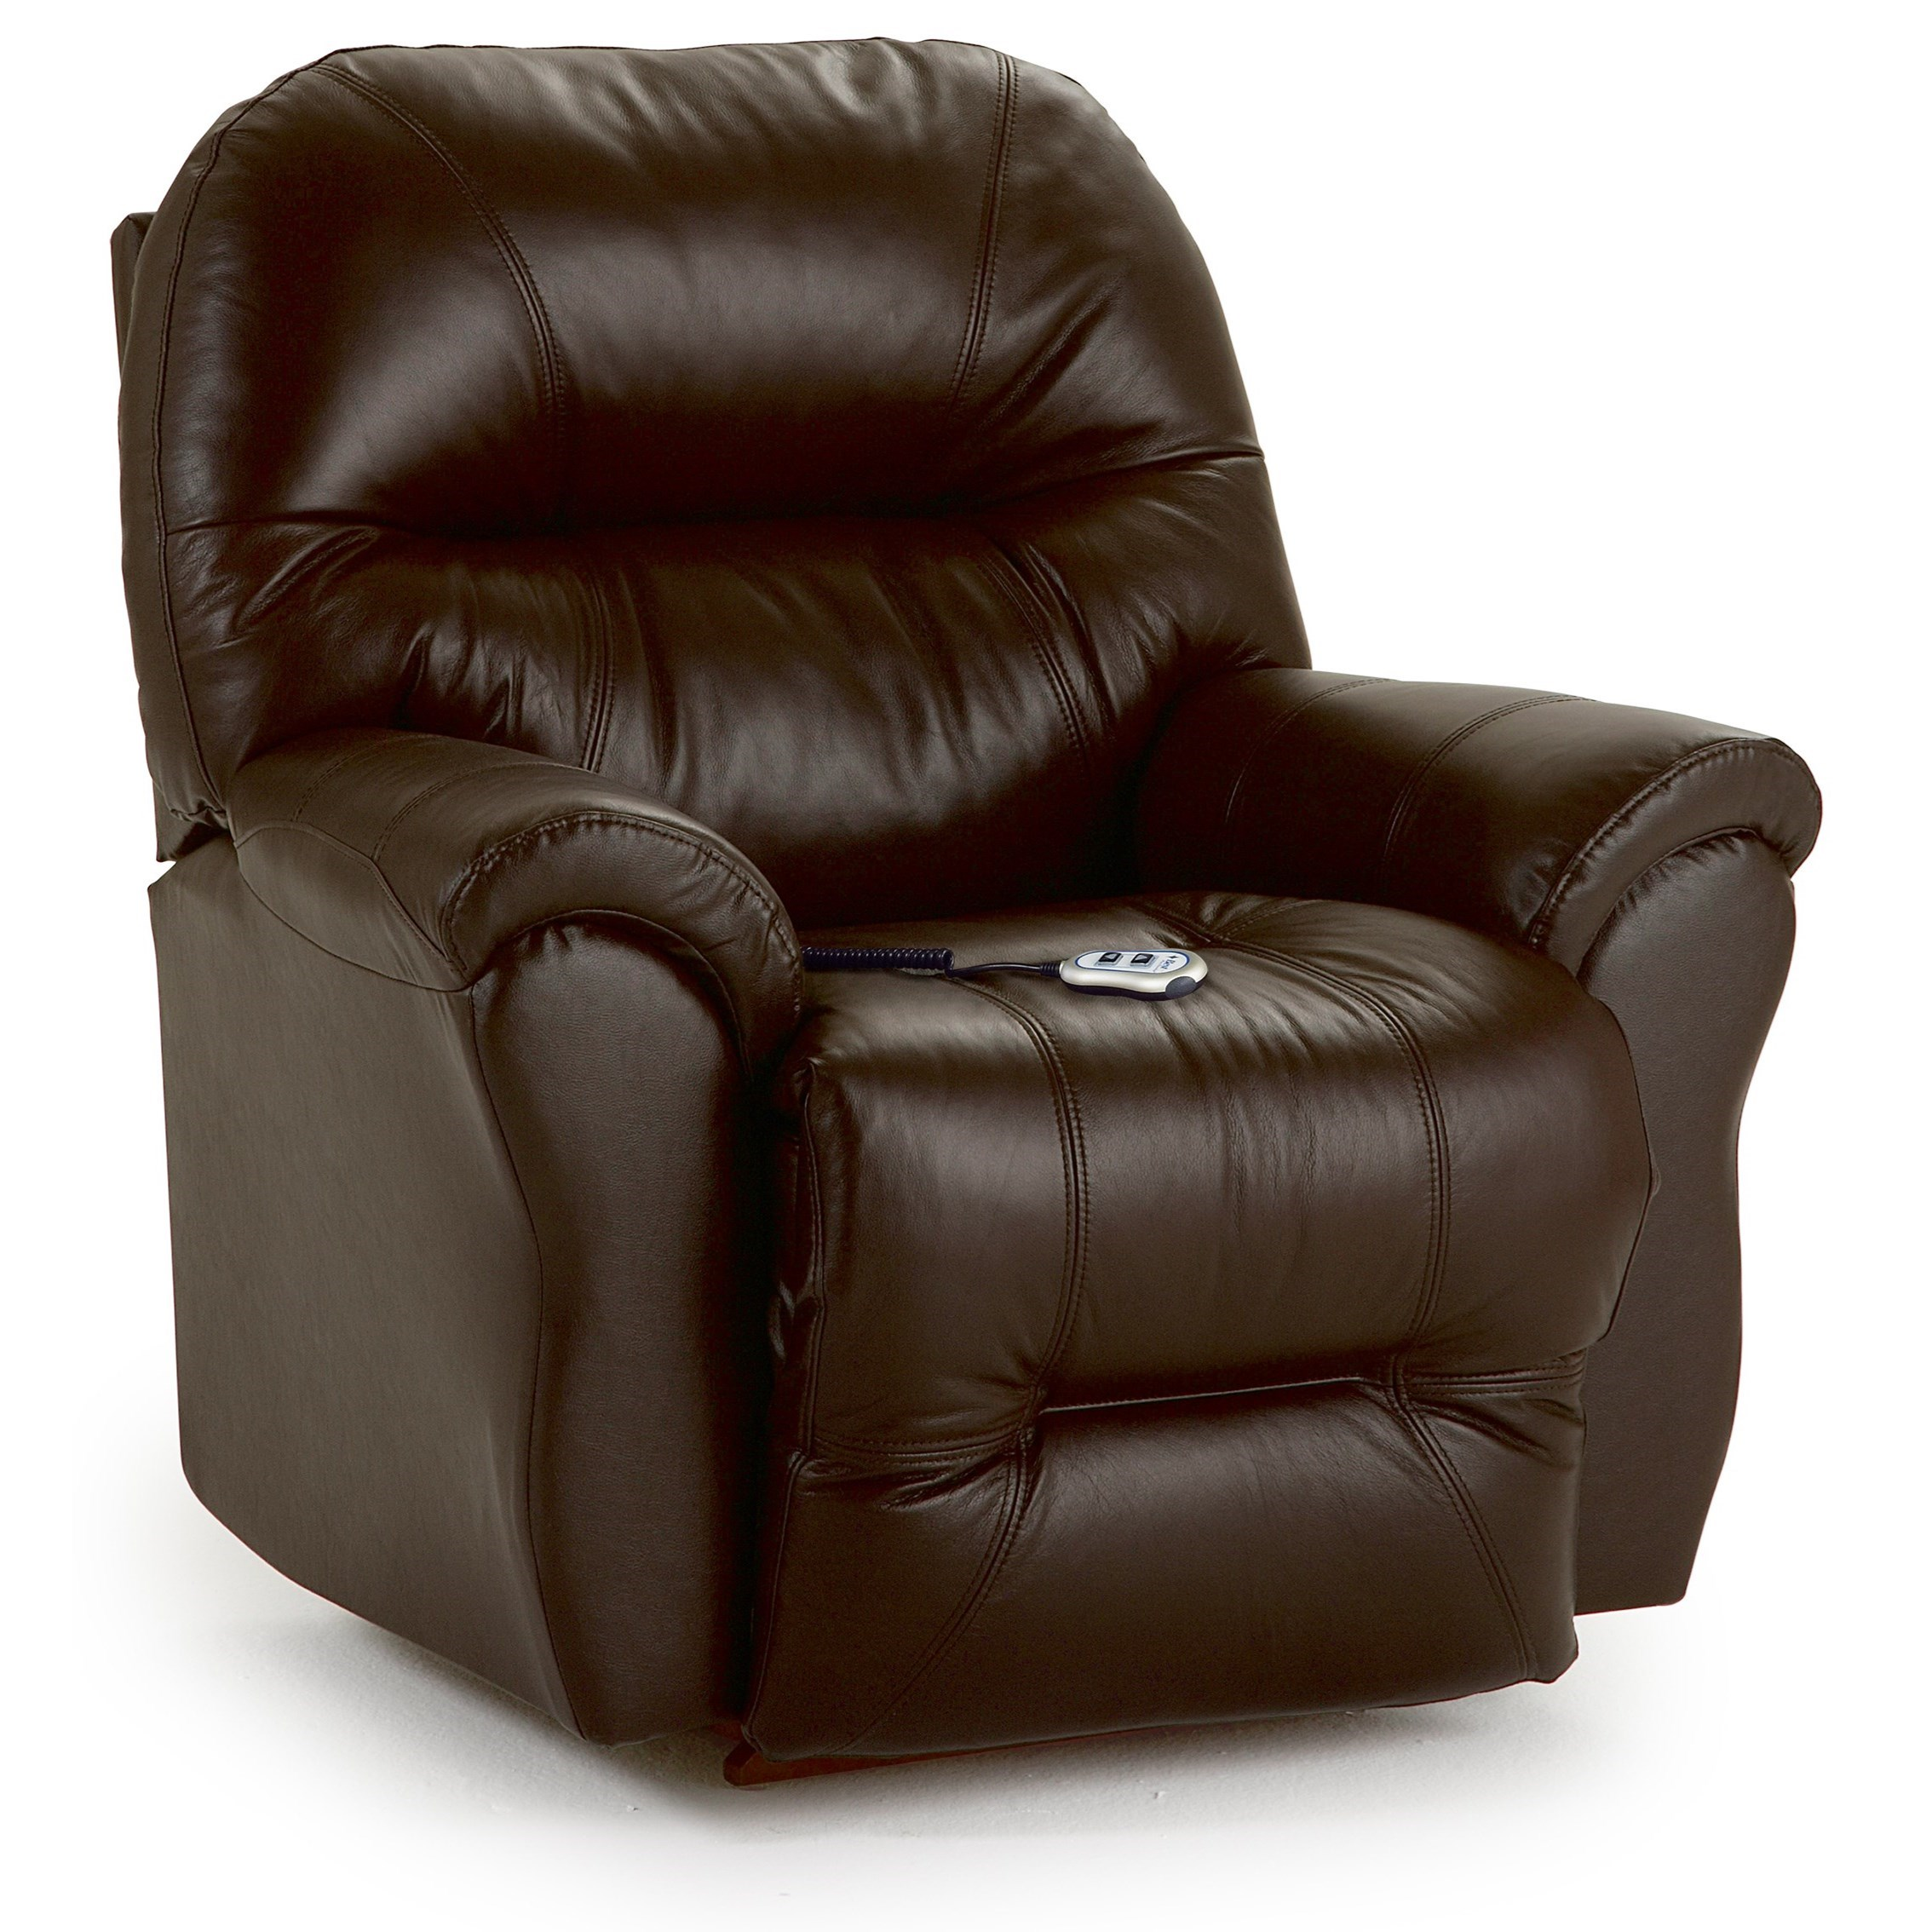 Best Home Furnishings Bodie Power Lift Recliner - Item Number: 8NW11LV